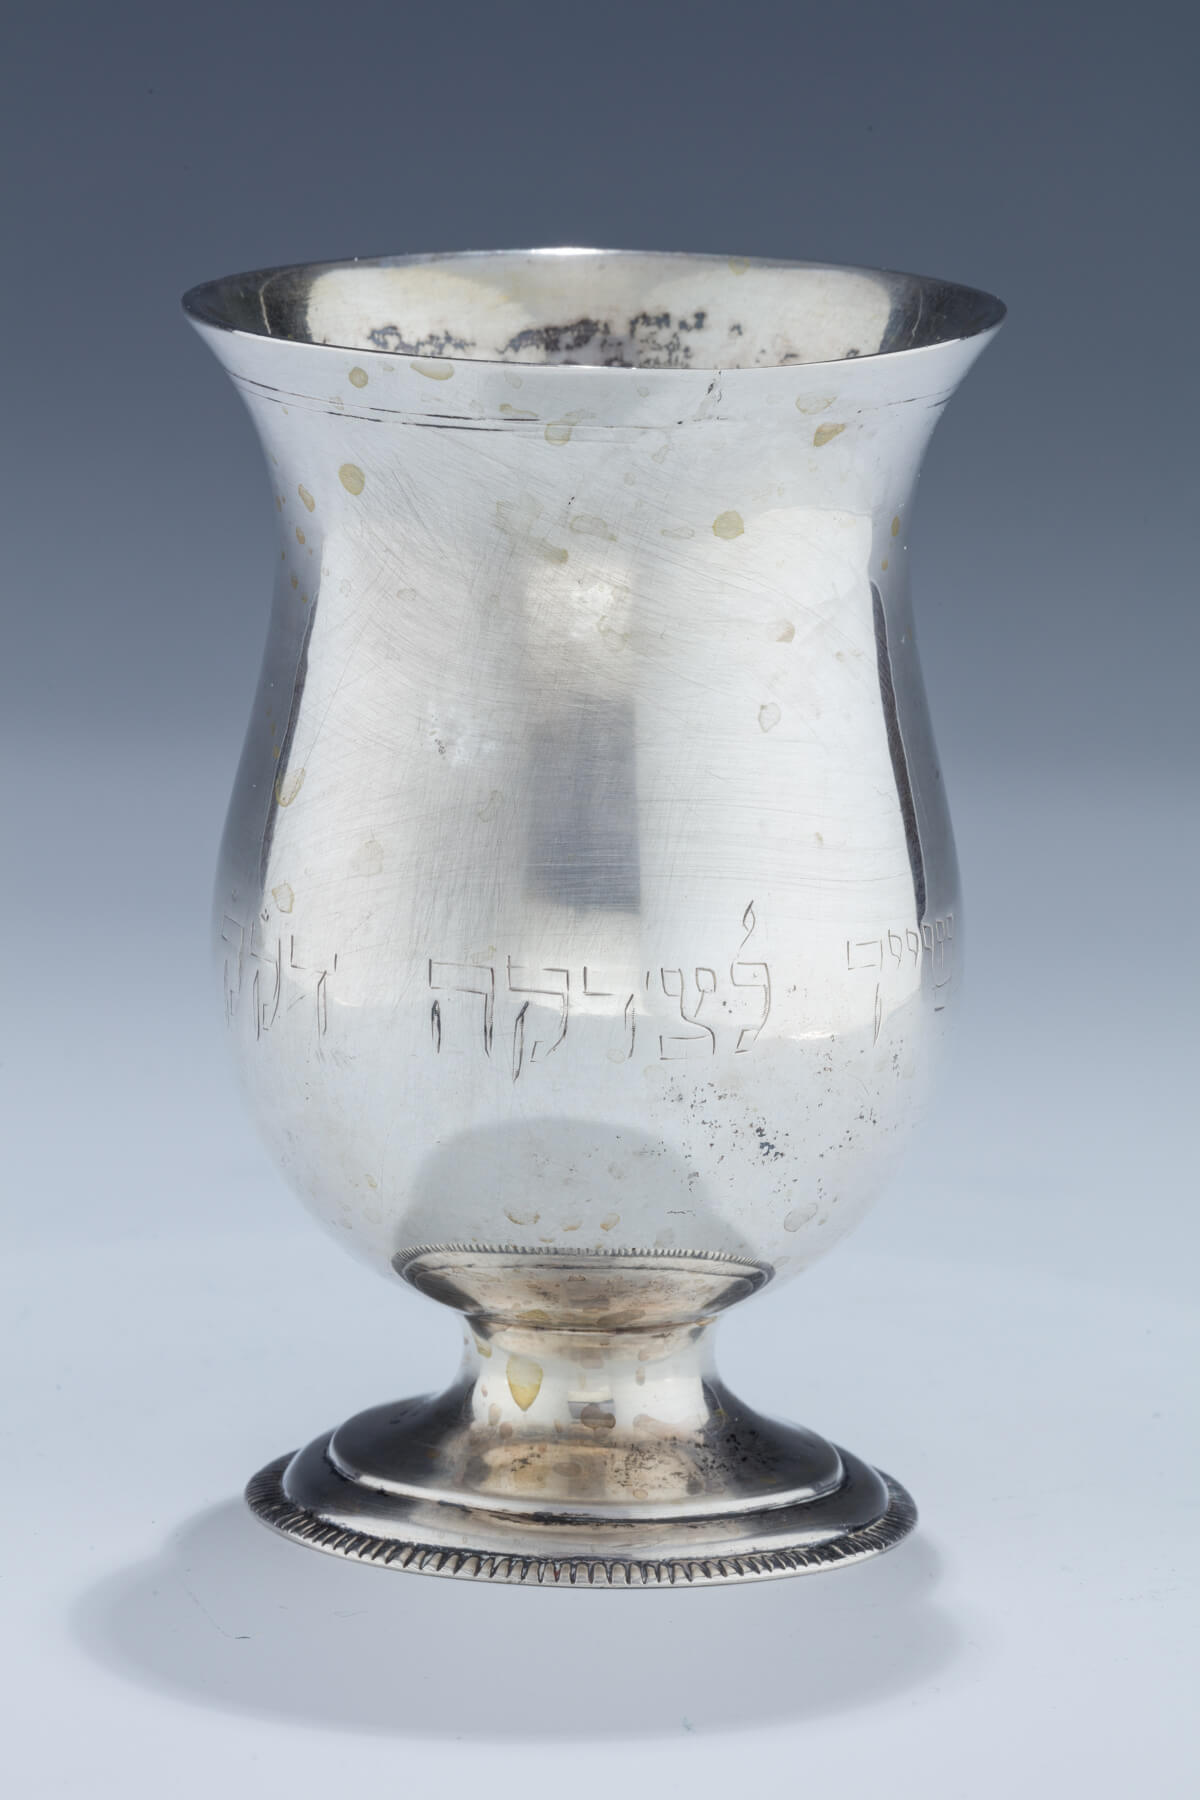 095. A Large Silver Charity Collection Cup